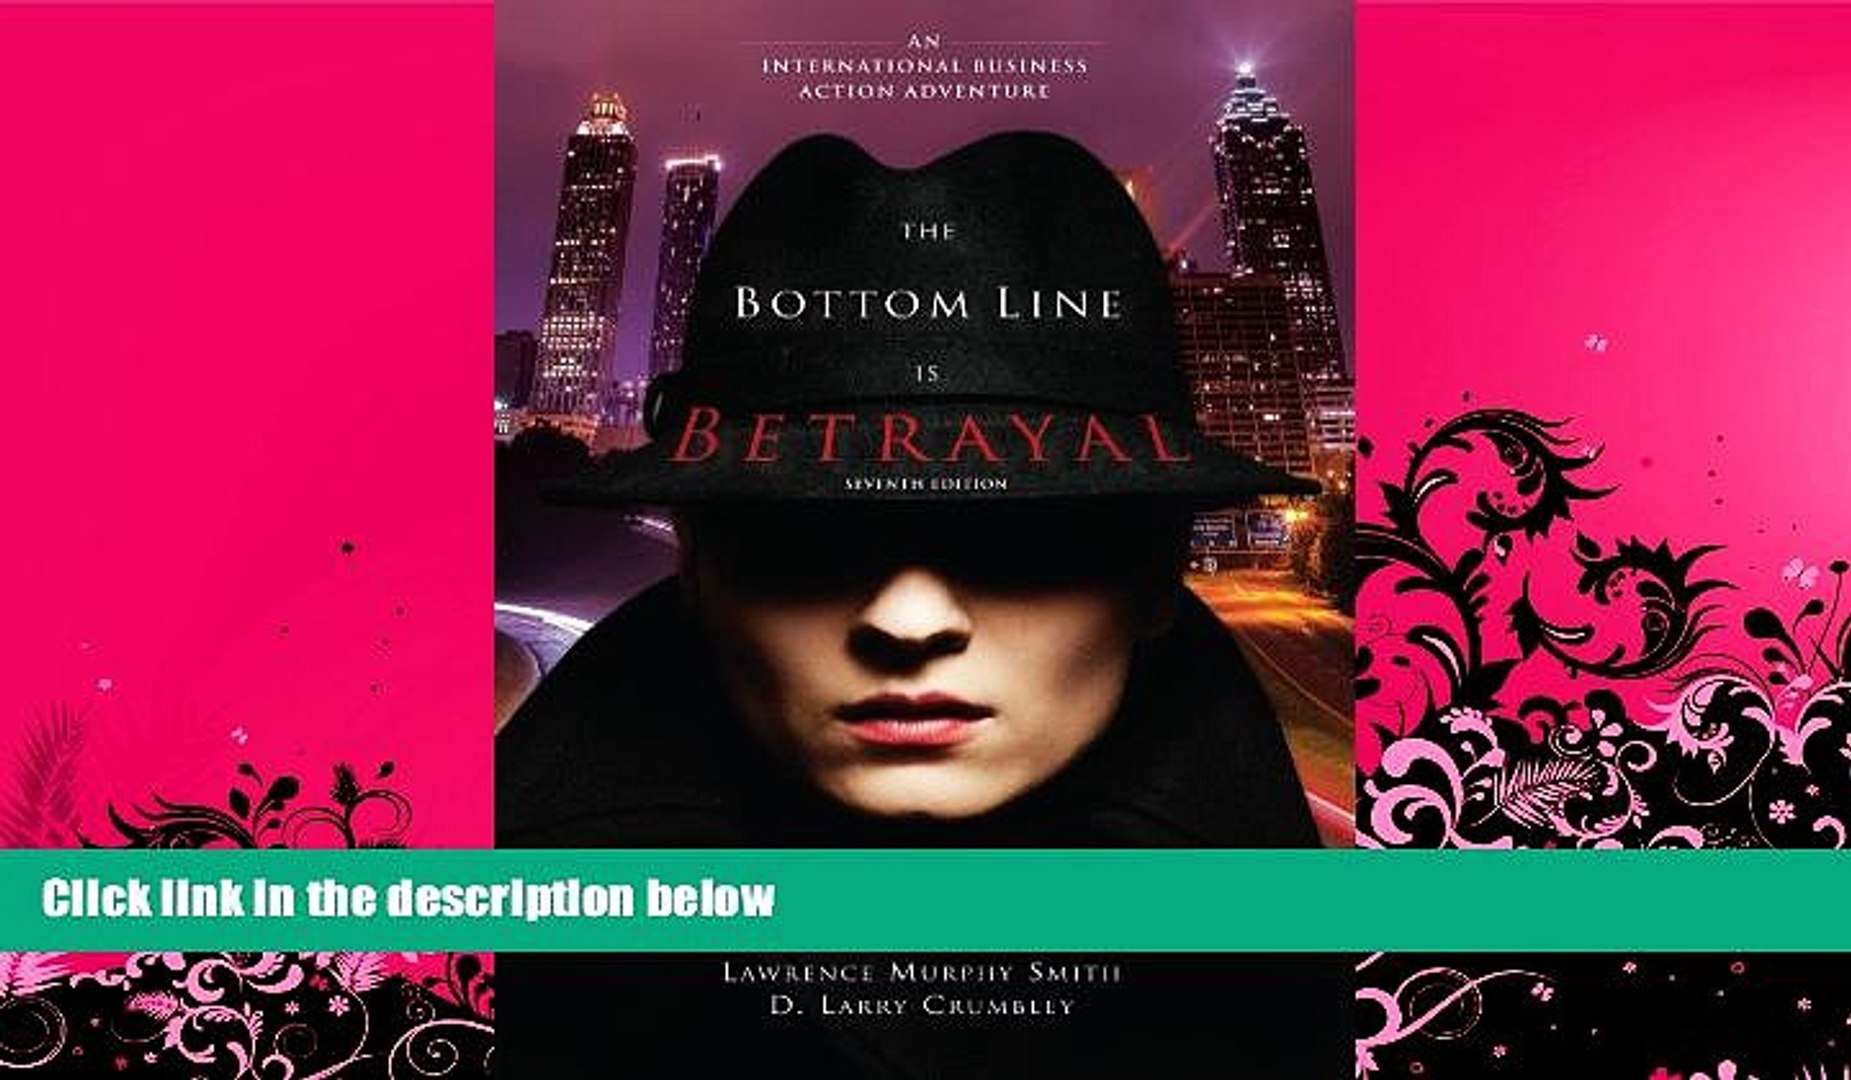 Online Katherine Taken Smith The Bottom Line Is Betrayal: An International Business Action